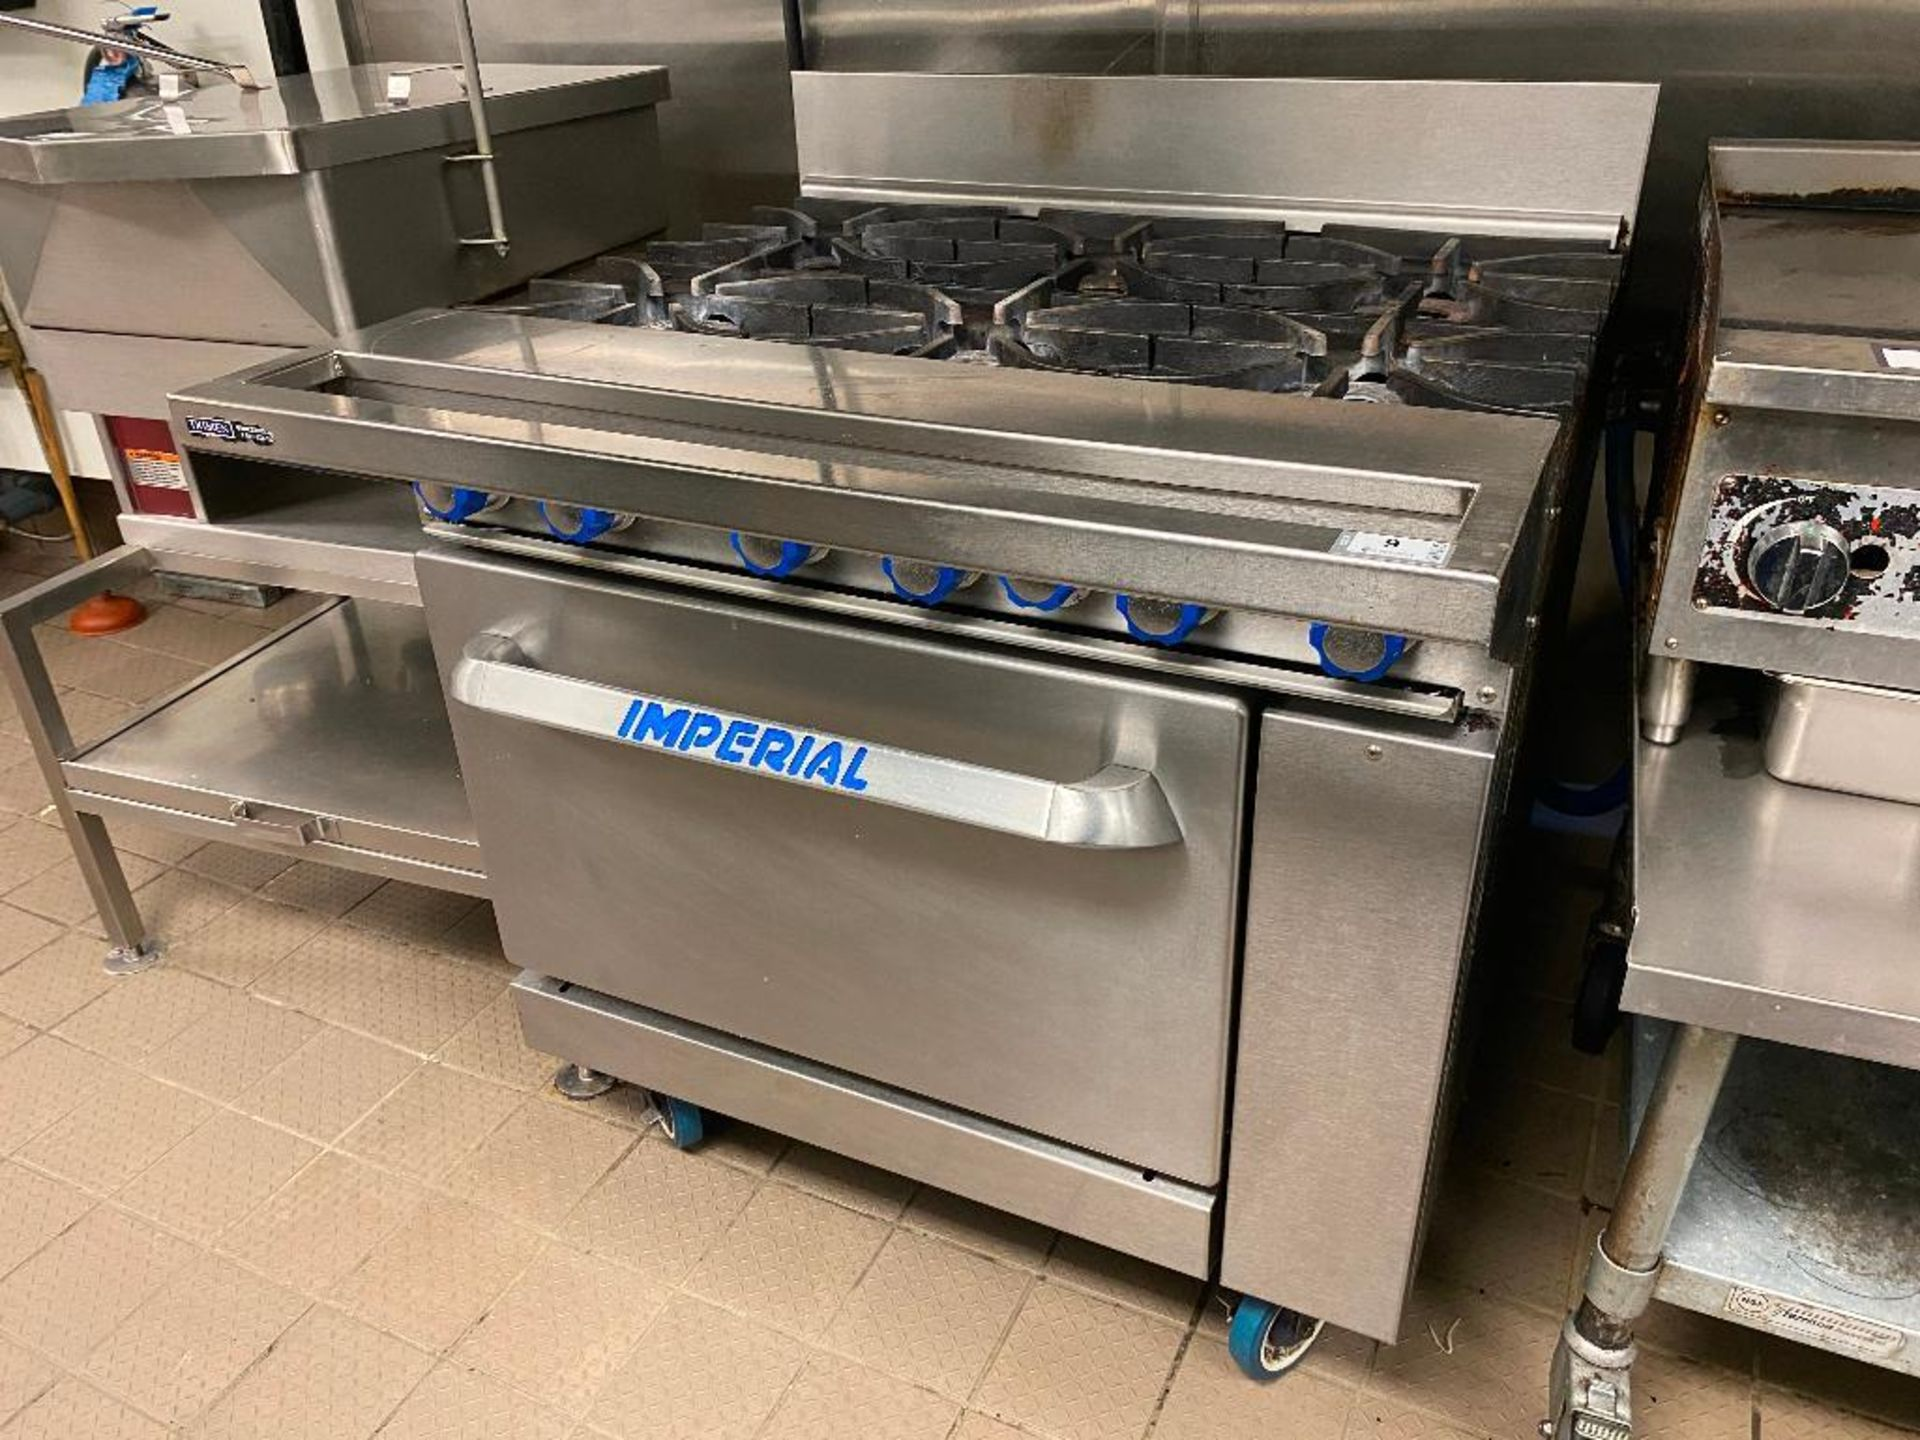 IMPERIAL 6 BURNER RANGE - NOTE: REQUIRES DISCONNECT, PLEASE INSPECT